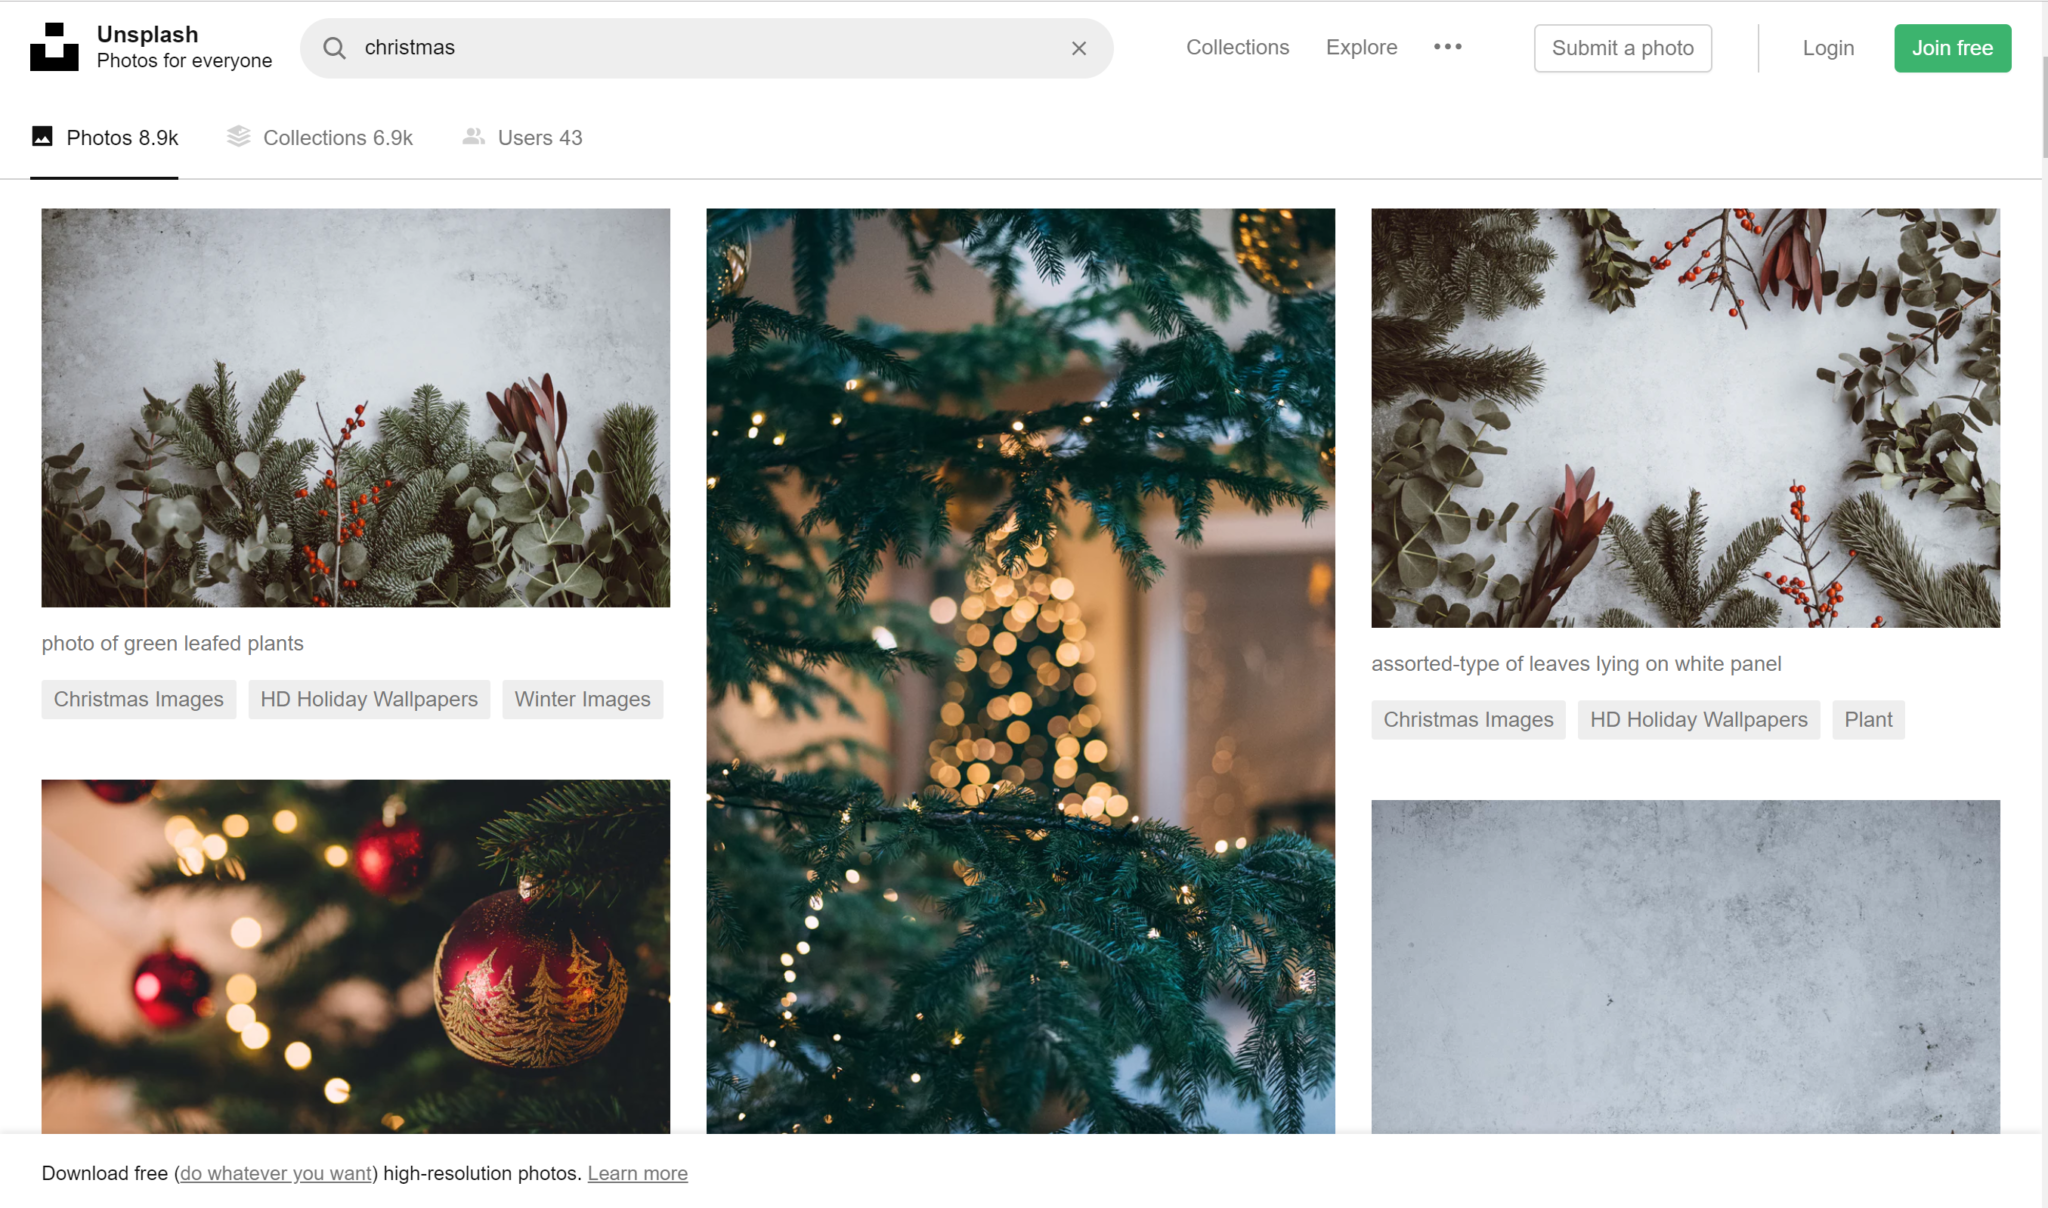 free images for christmas holidays